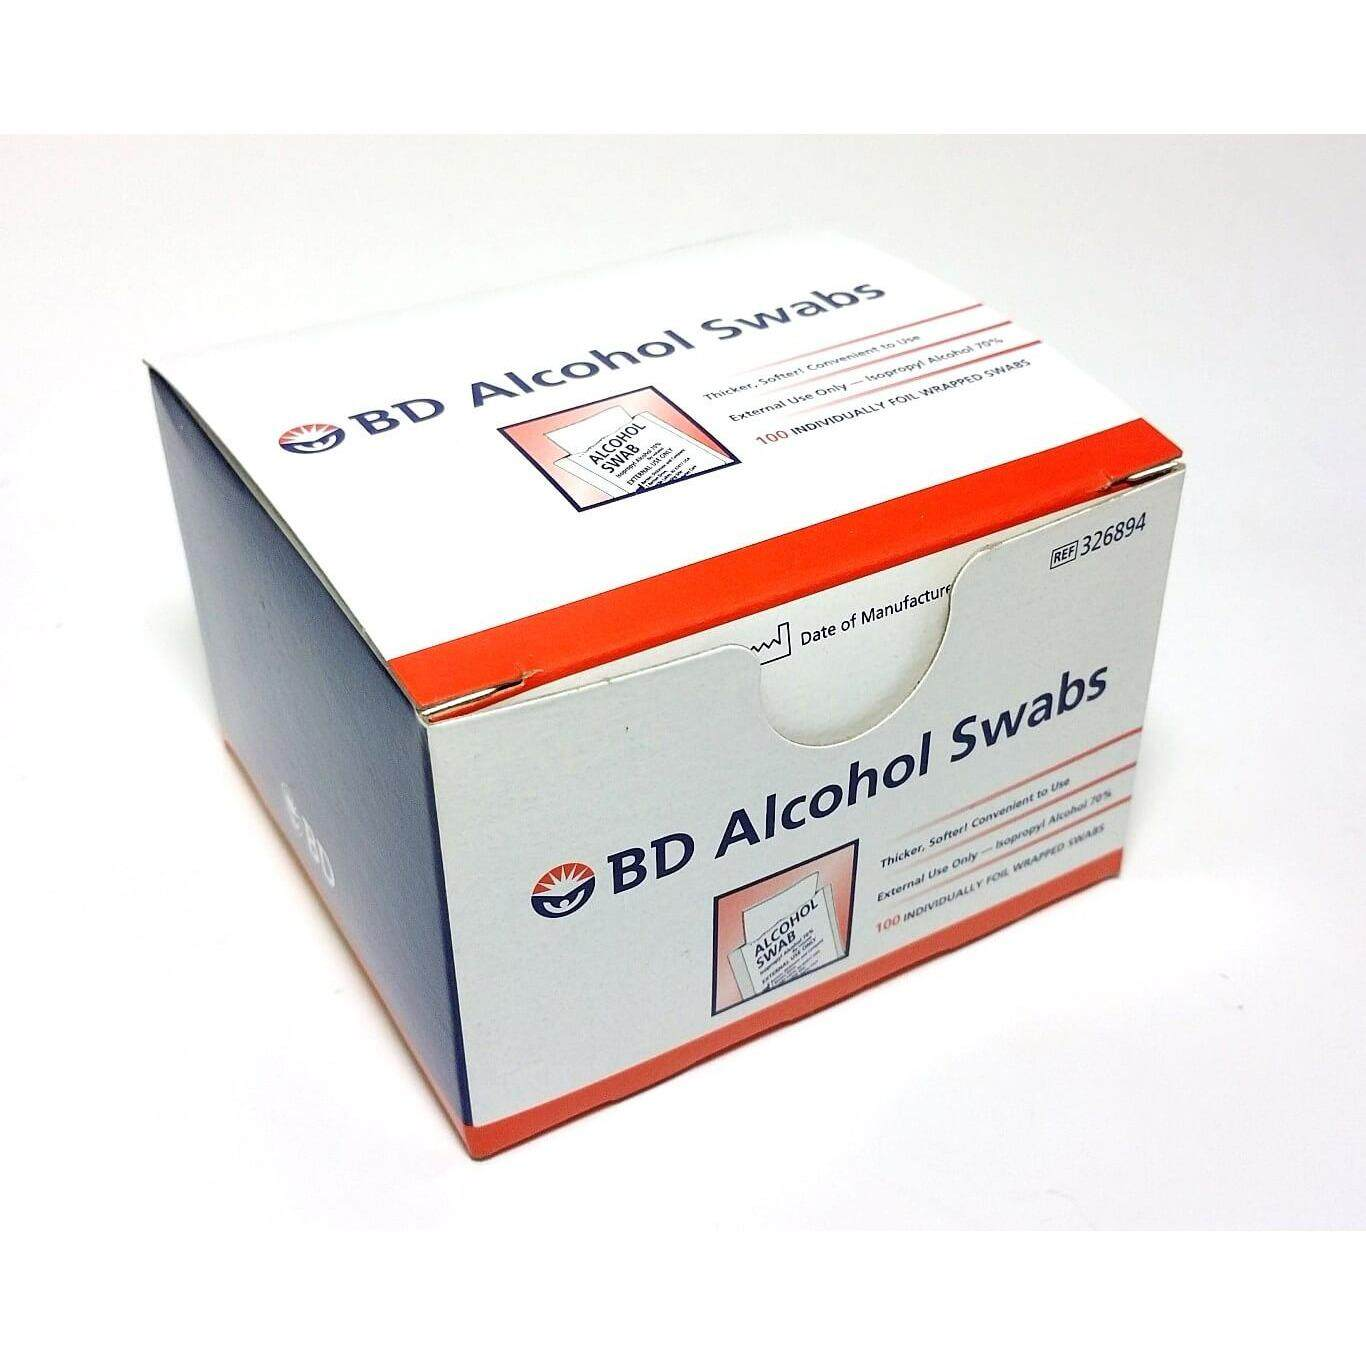 BD Alcohol Swab 100's (Sterile Alcohol Pad for disinfection)